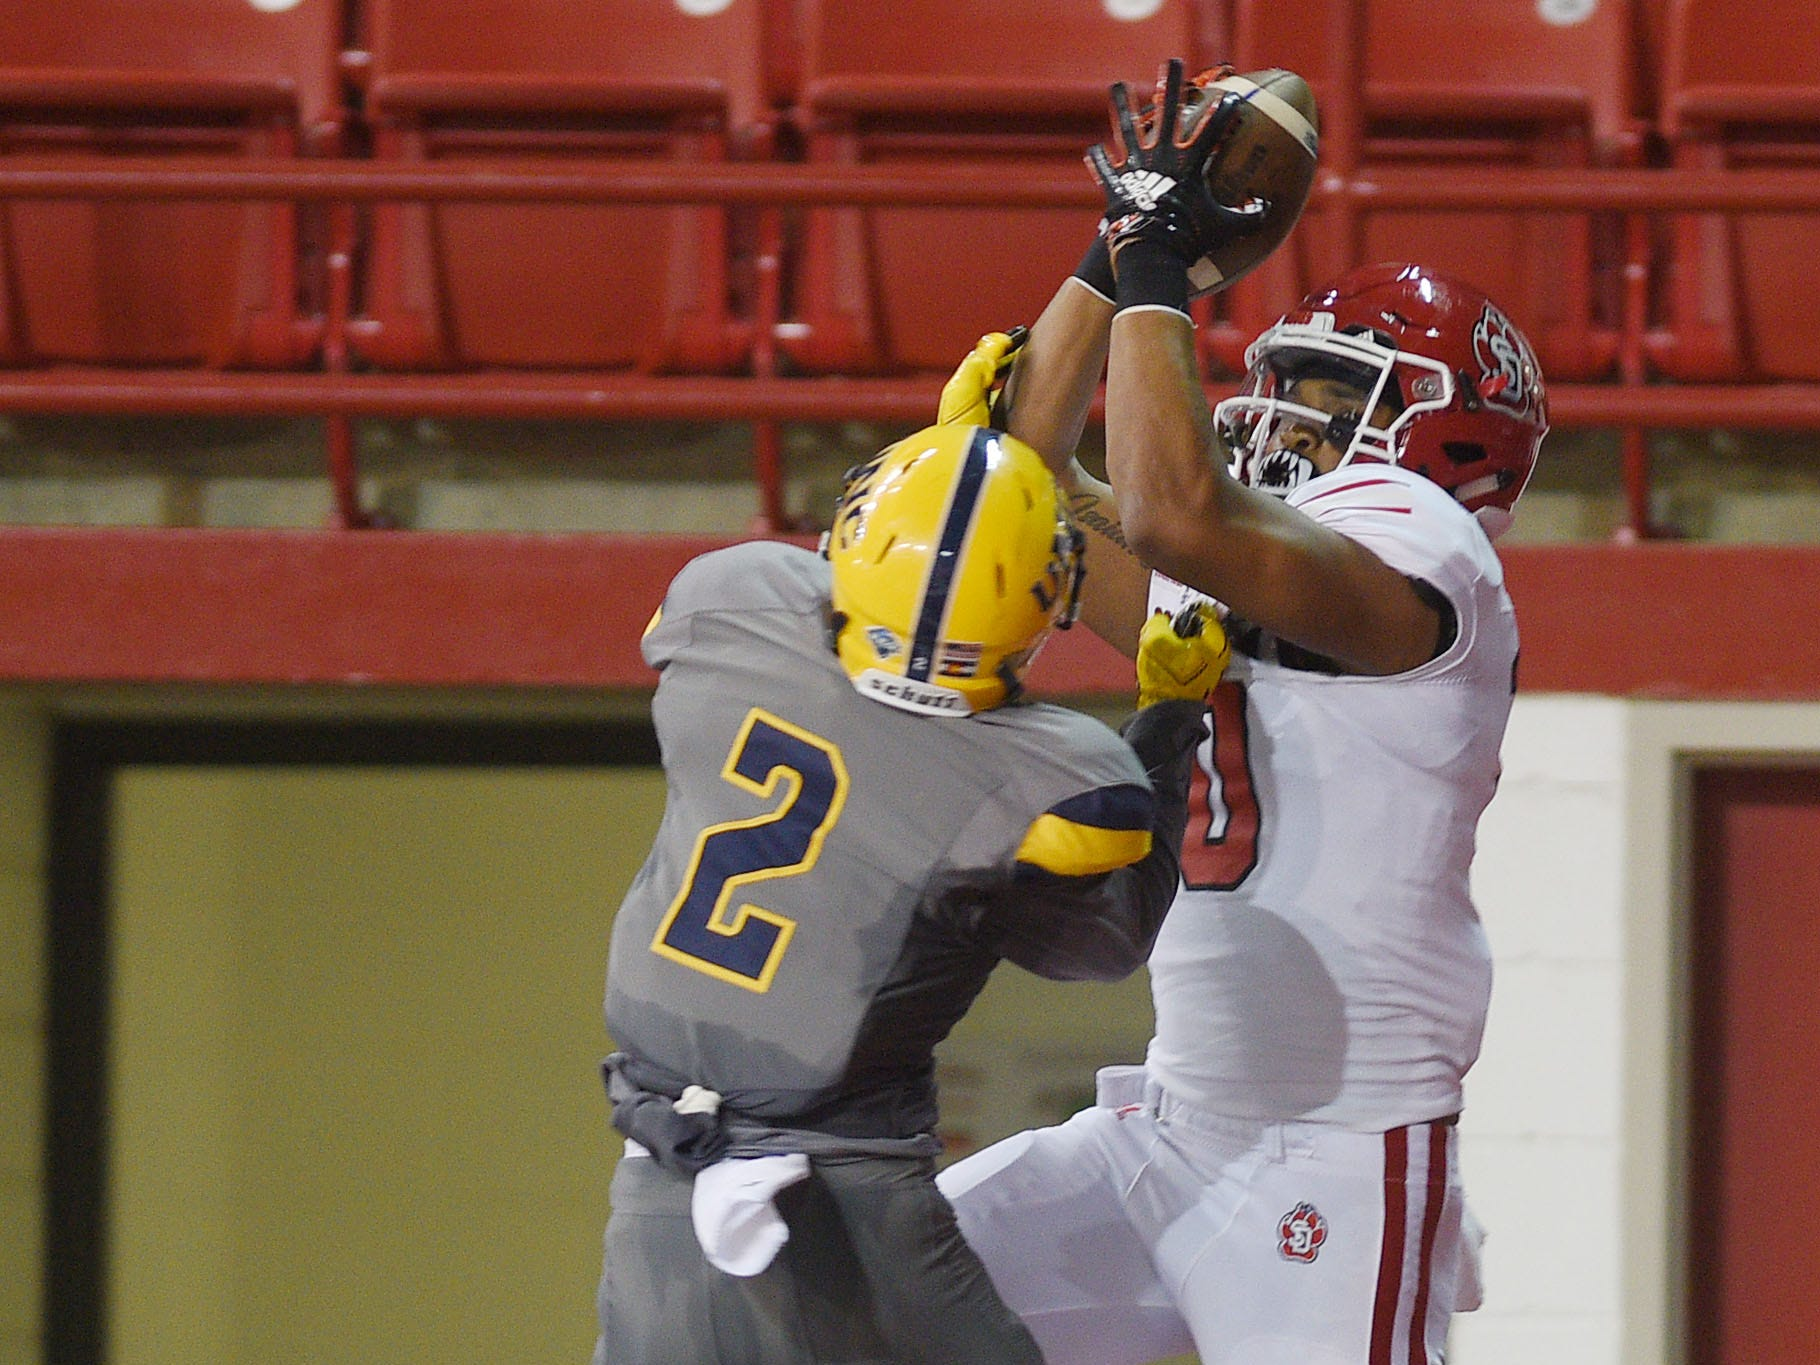 USD's Reggie Crawford catches the ball in the end zone  against Northern Colorado's Isaiah Swopes during the game Saturday, Sept 8, at the DakotaDome in Vermillion.